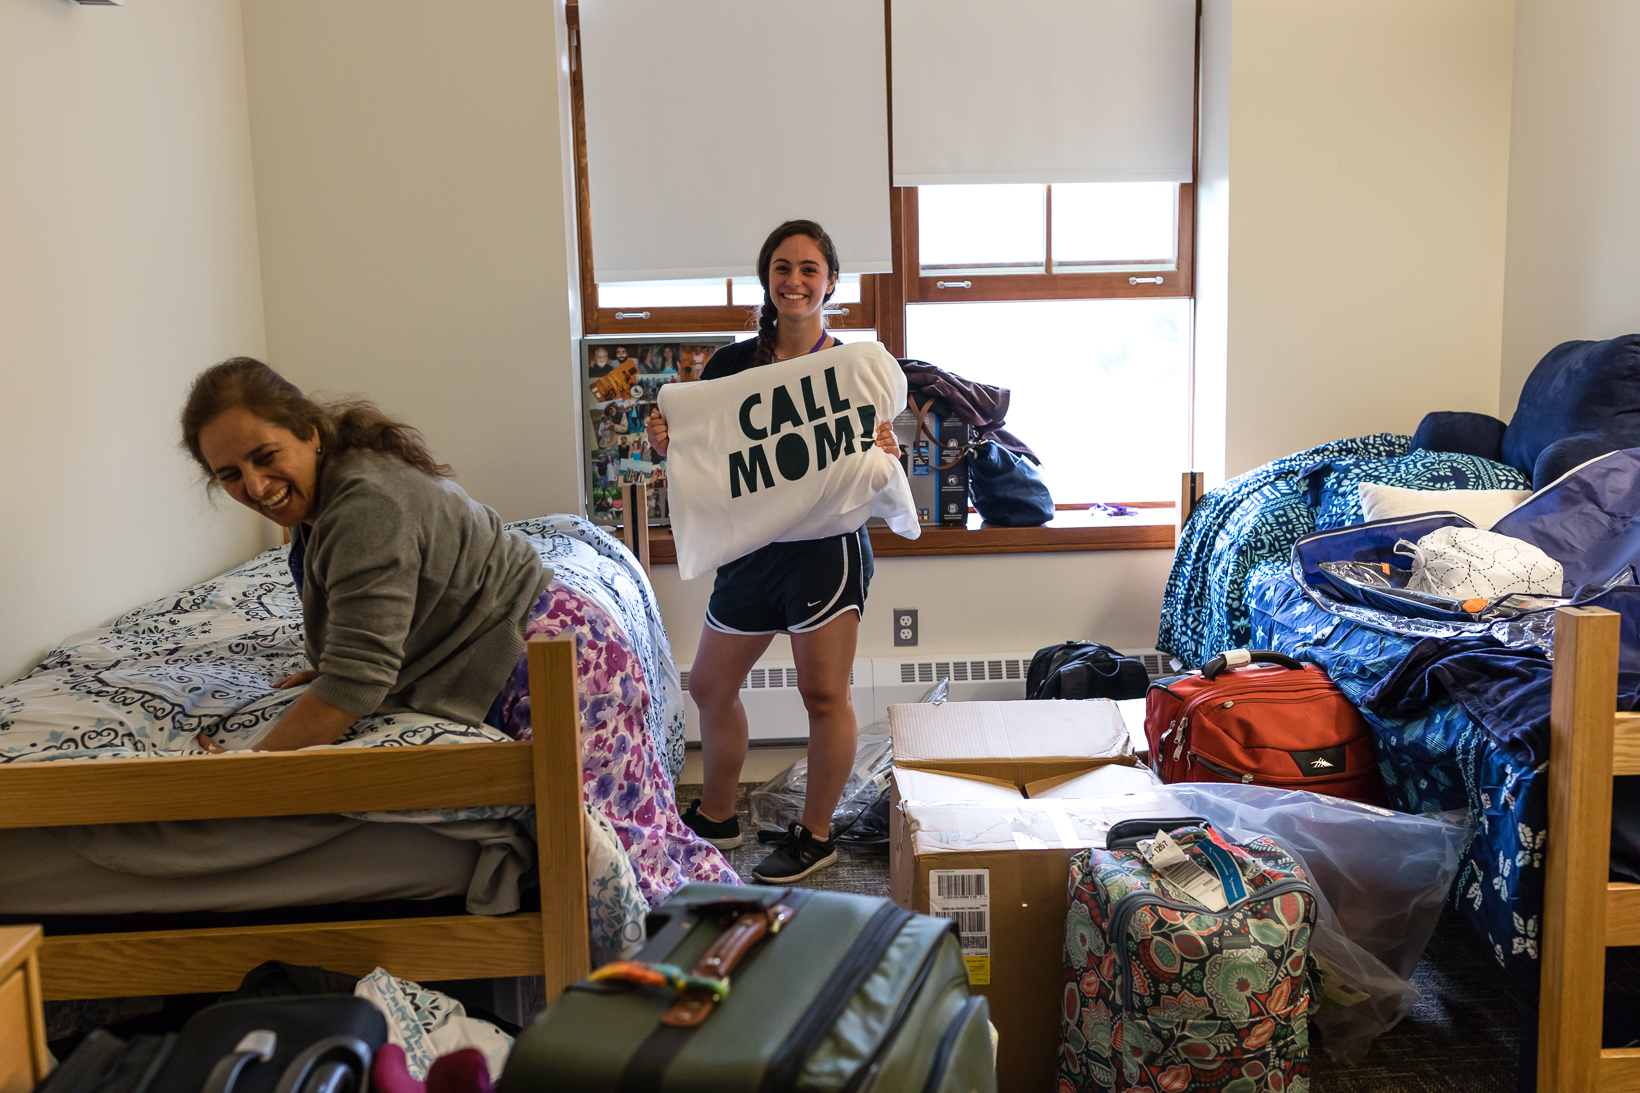 While her mother, Ahang Zafari, makes her bed, Navva Sedigh '21 shares some good advice from her pillowcase.